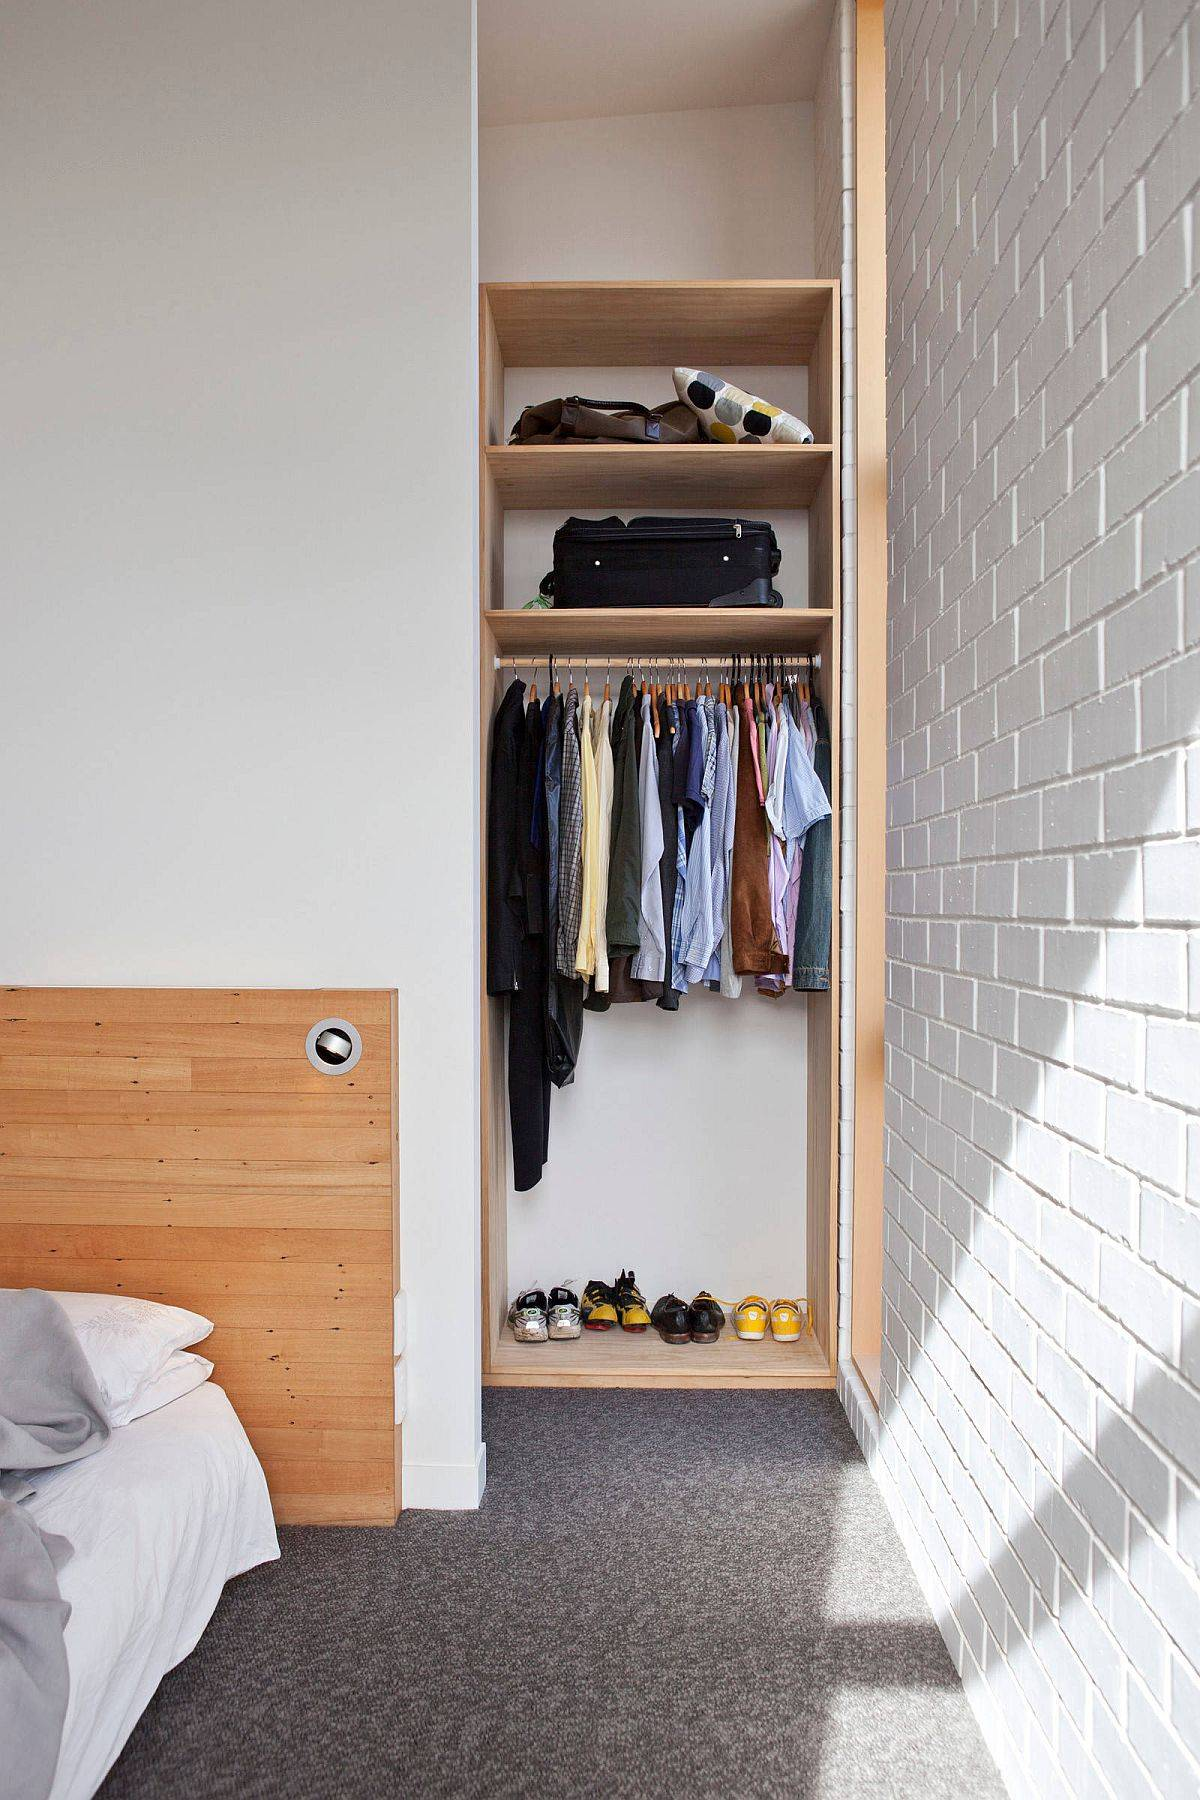 Tiny and open men's closet design in wood is neatlly tucked into the space next to the bed